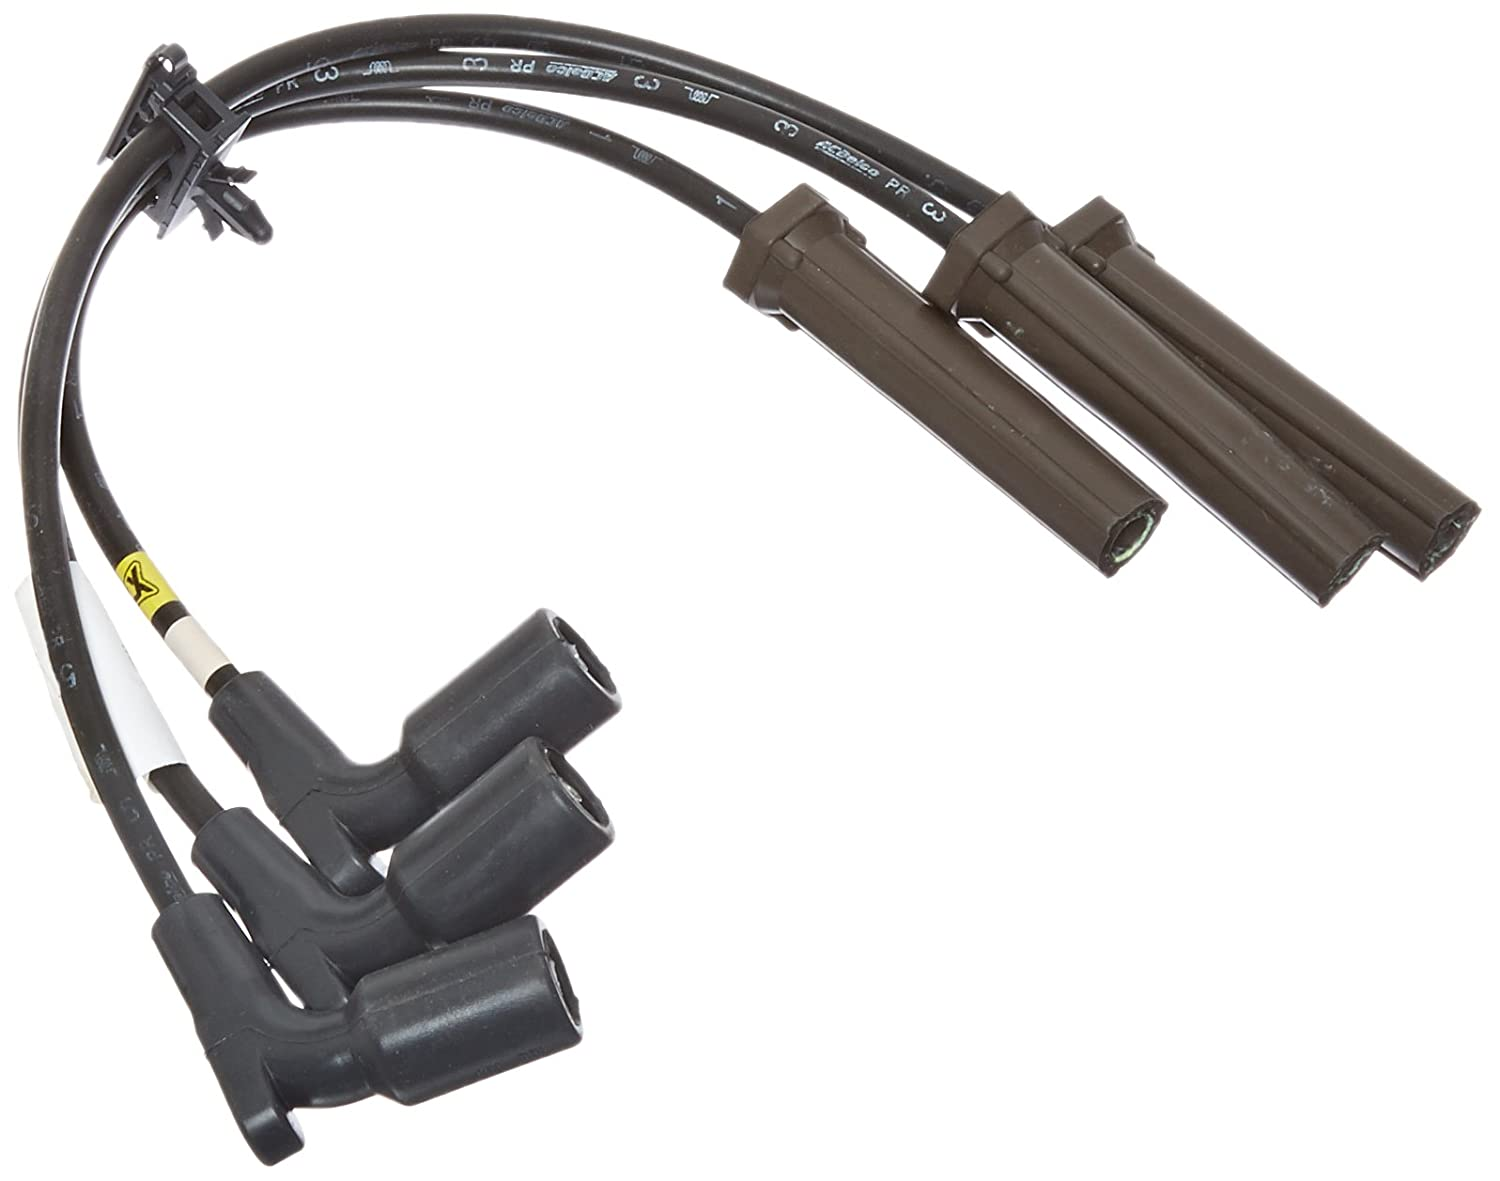 ACDelco 746VV GM Original Equipment Spark Plug Wiring Harness 746VV-ACD